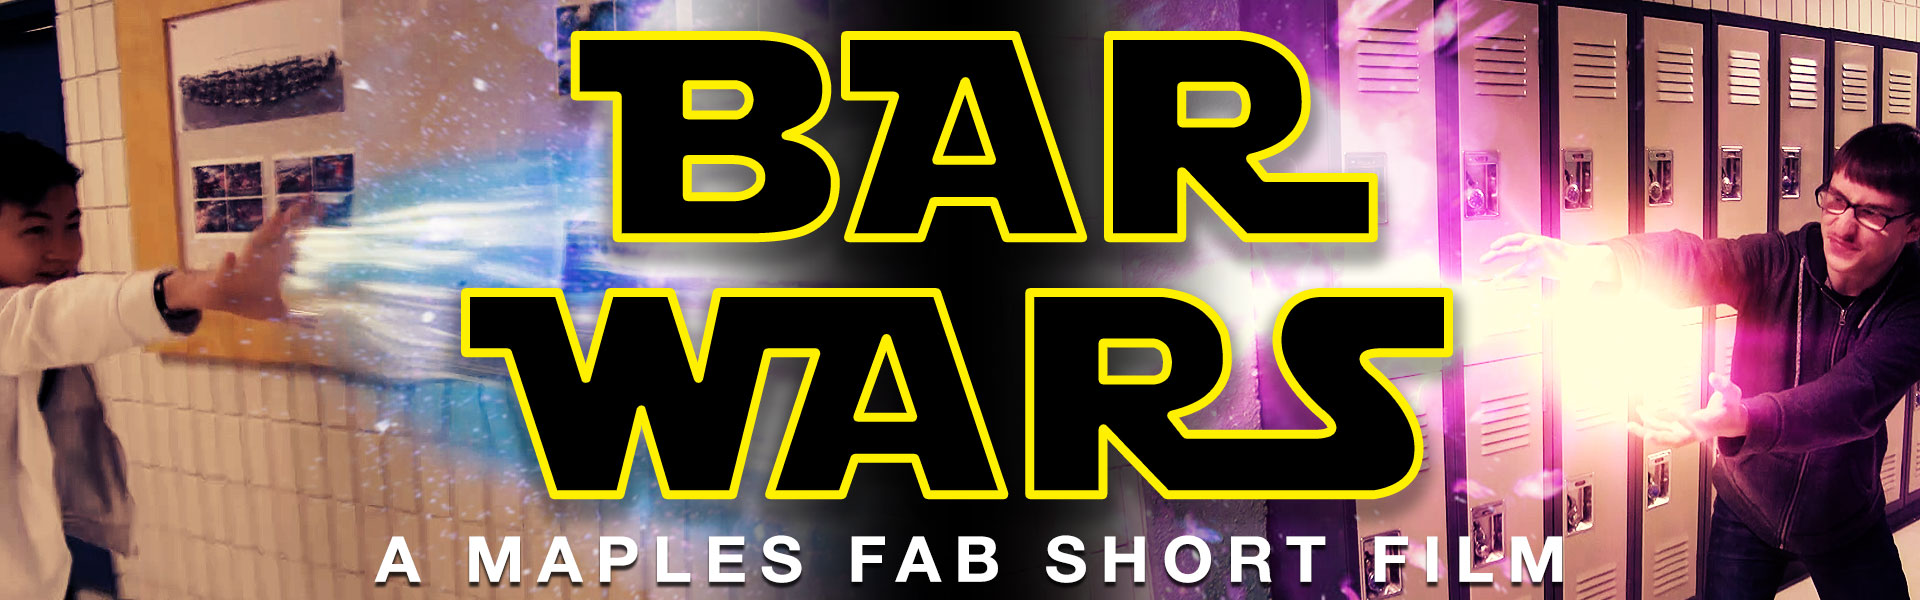 Bar Wars - Maples FAB Short Film